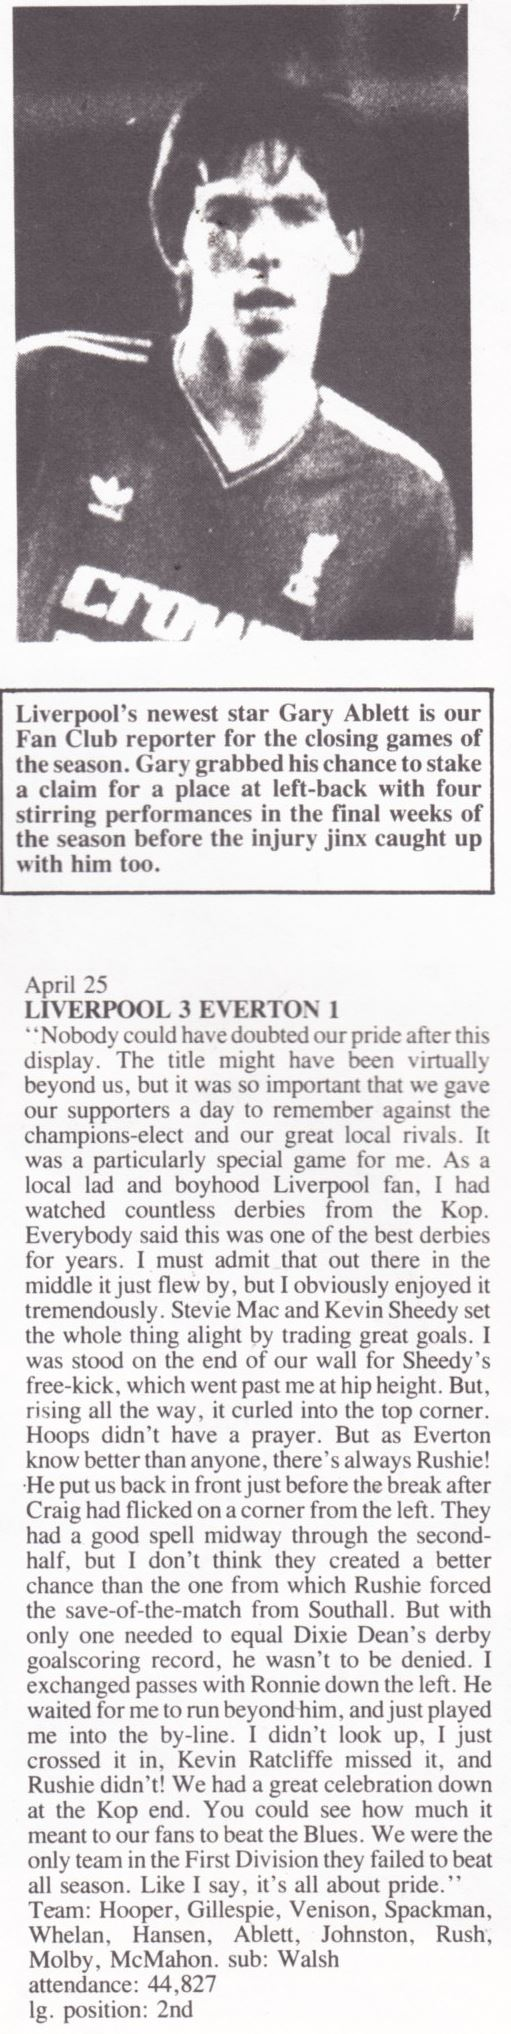 Gary Ablett's view on Liverpool - Everton 25 April 1987